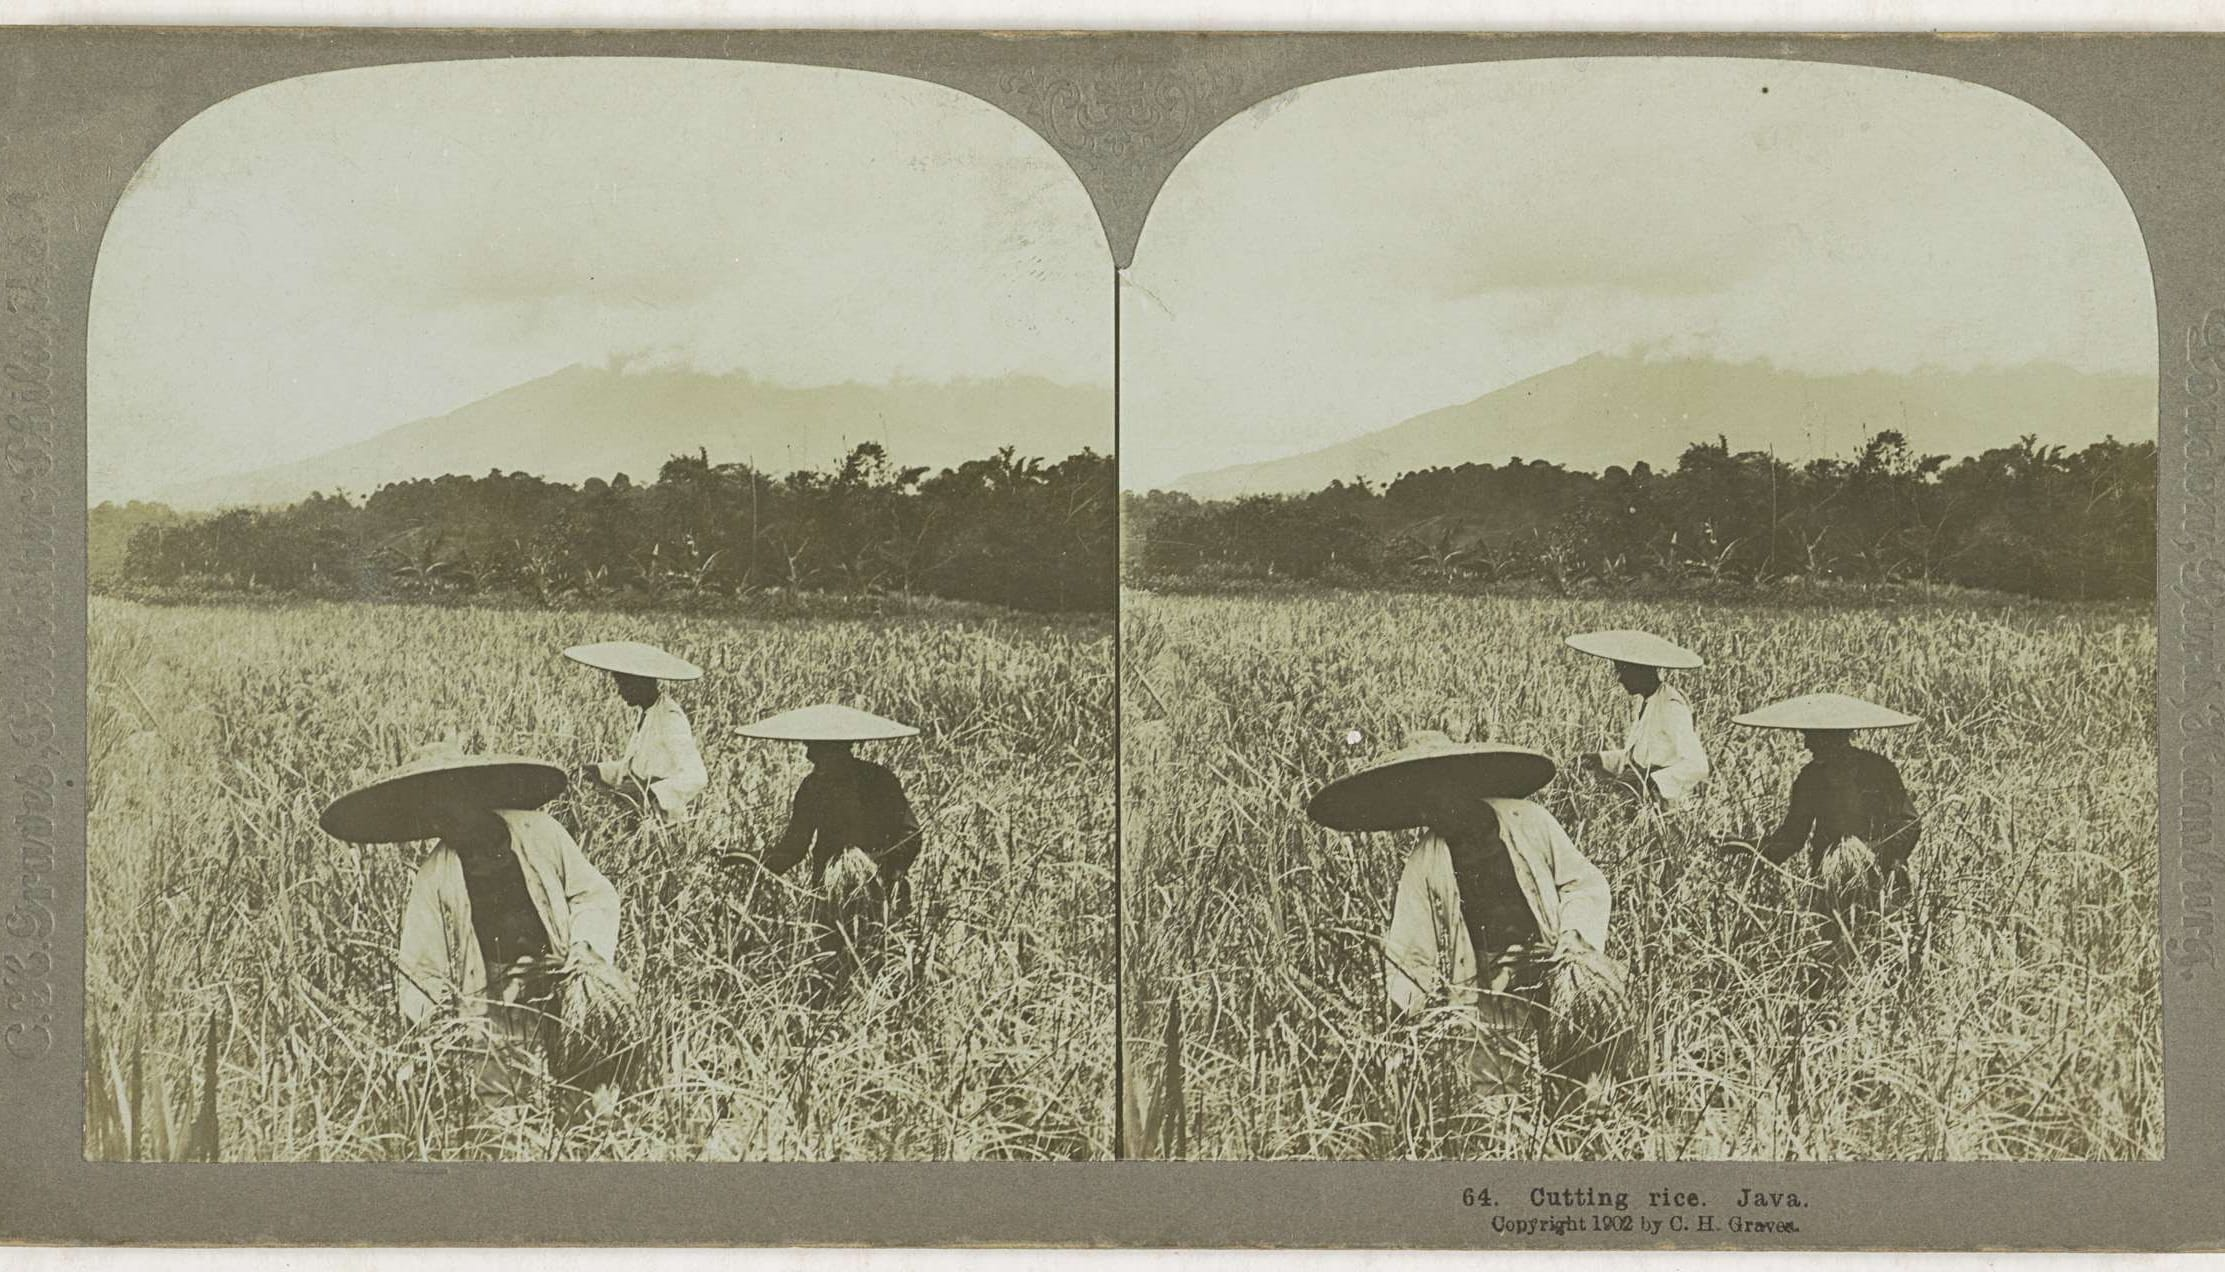 Two photographs of people cutting rice in Java.